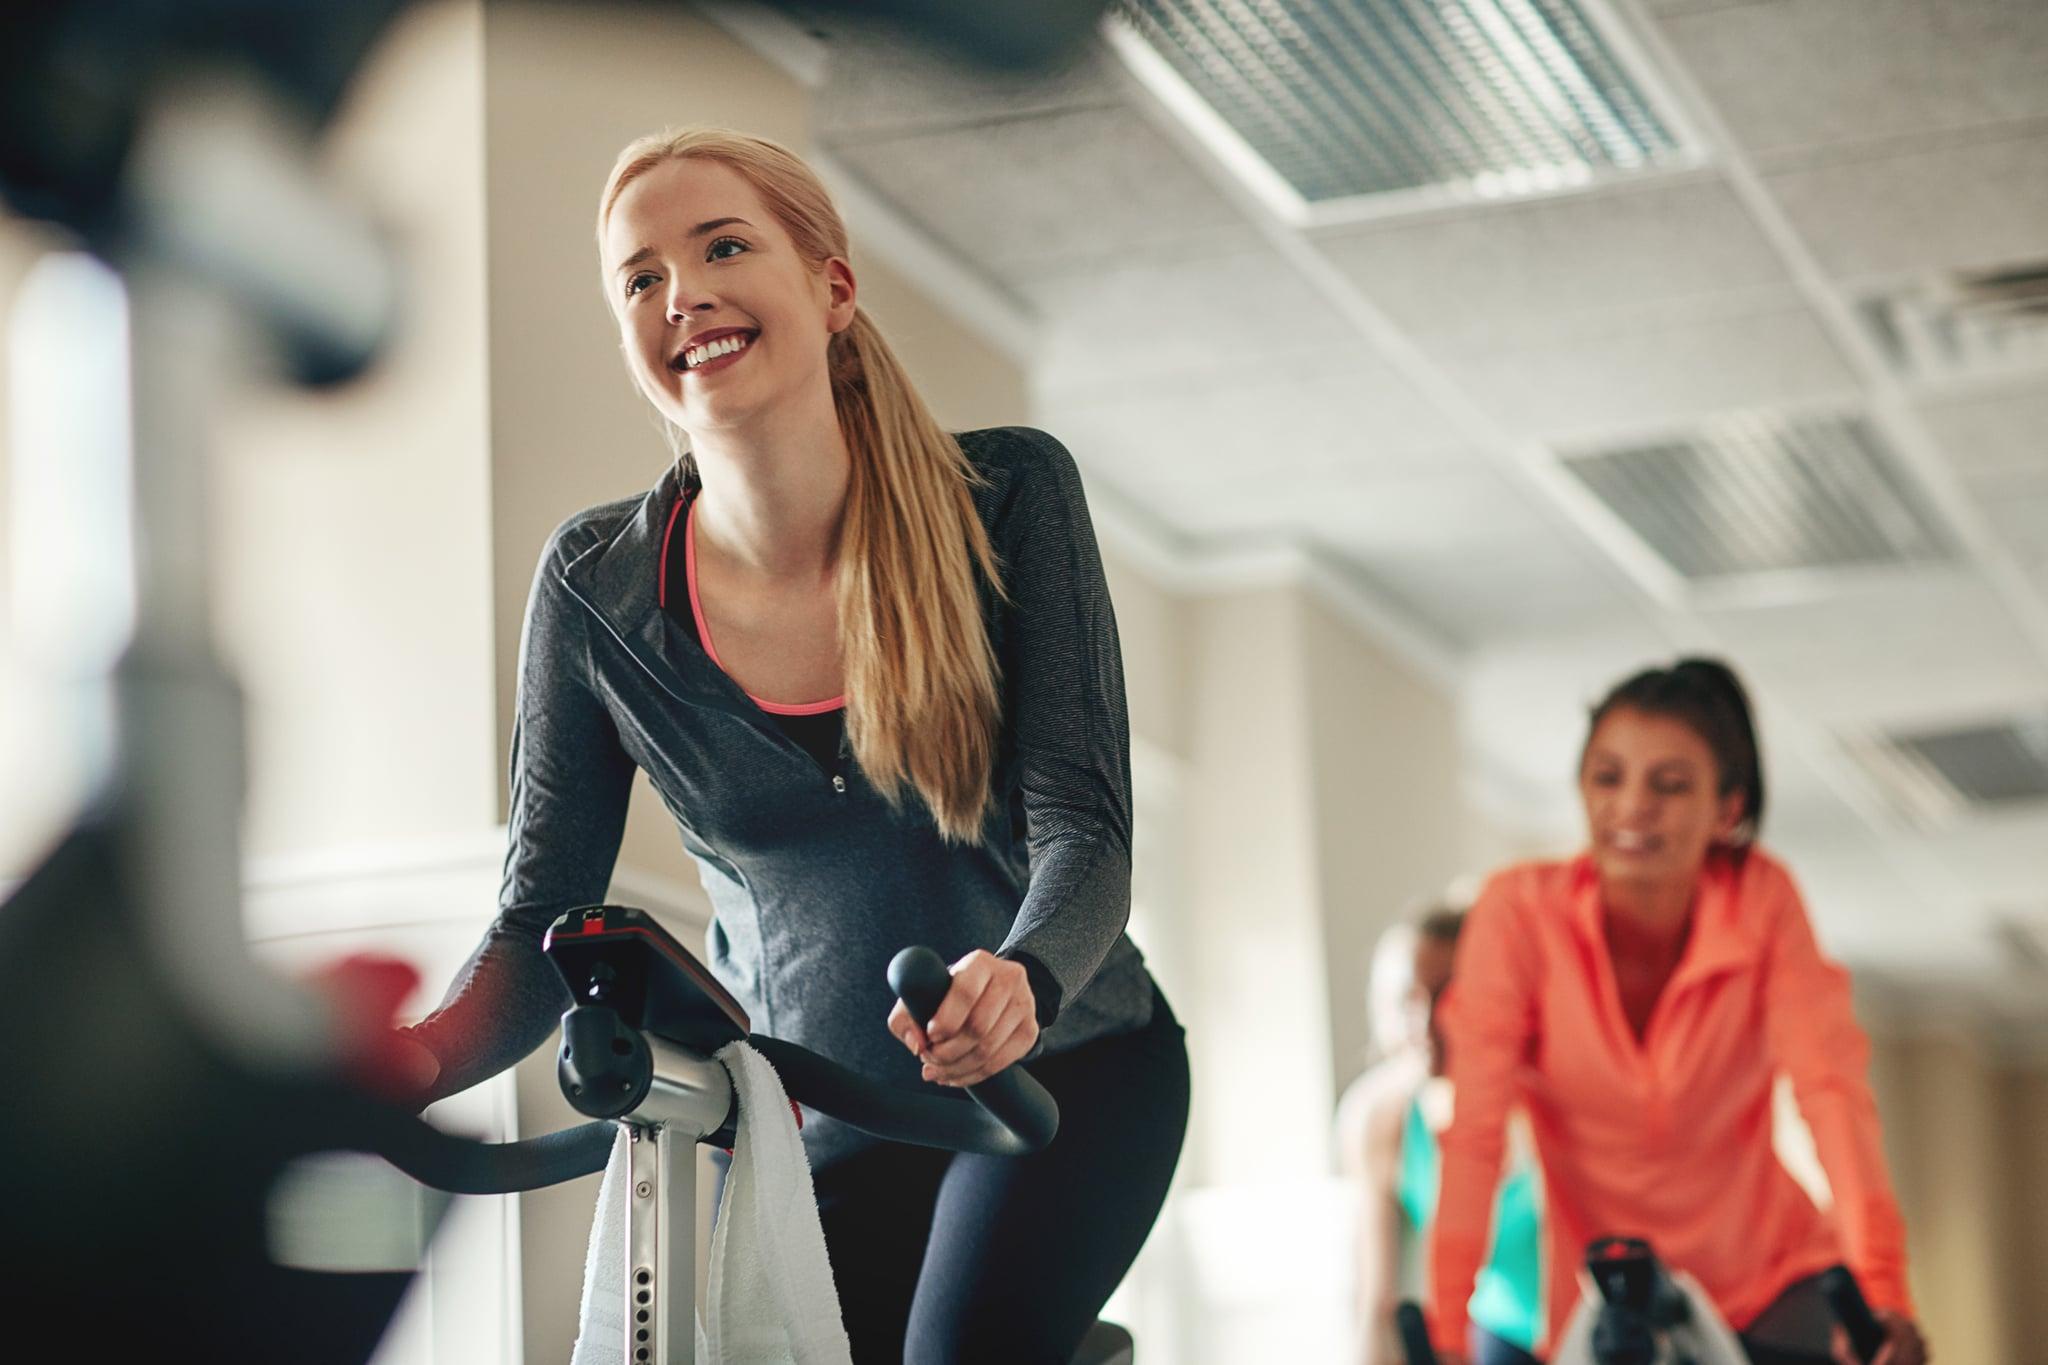 Shot of a young woman working out with an exercise bike in a exercising class at the gym